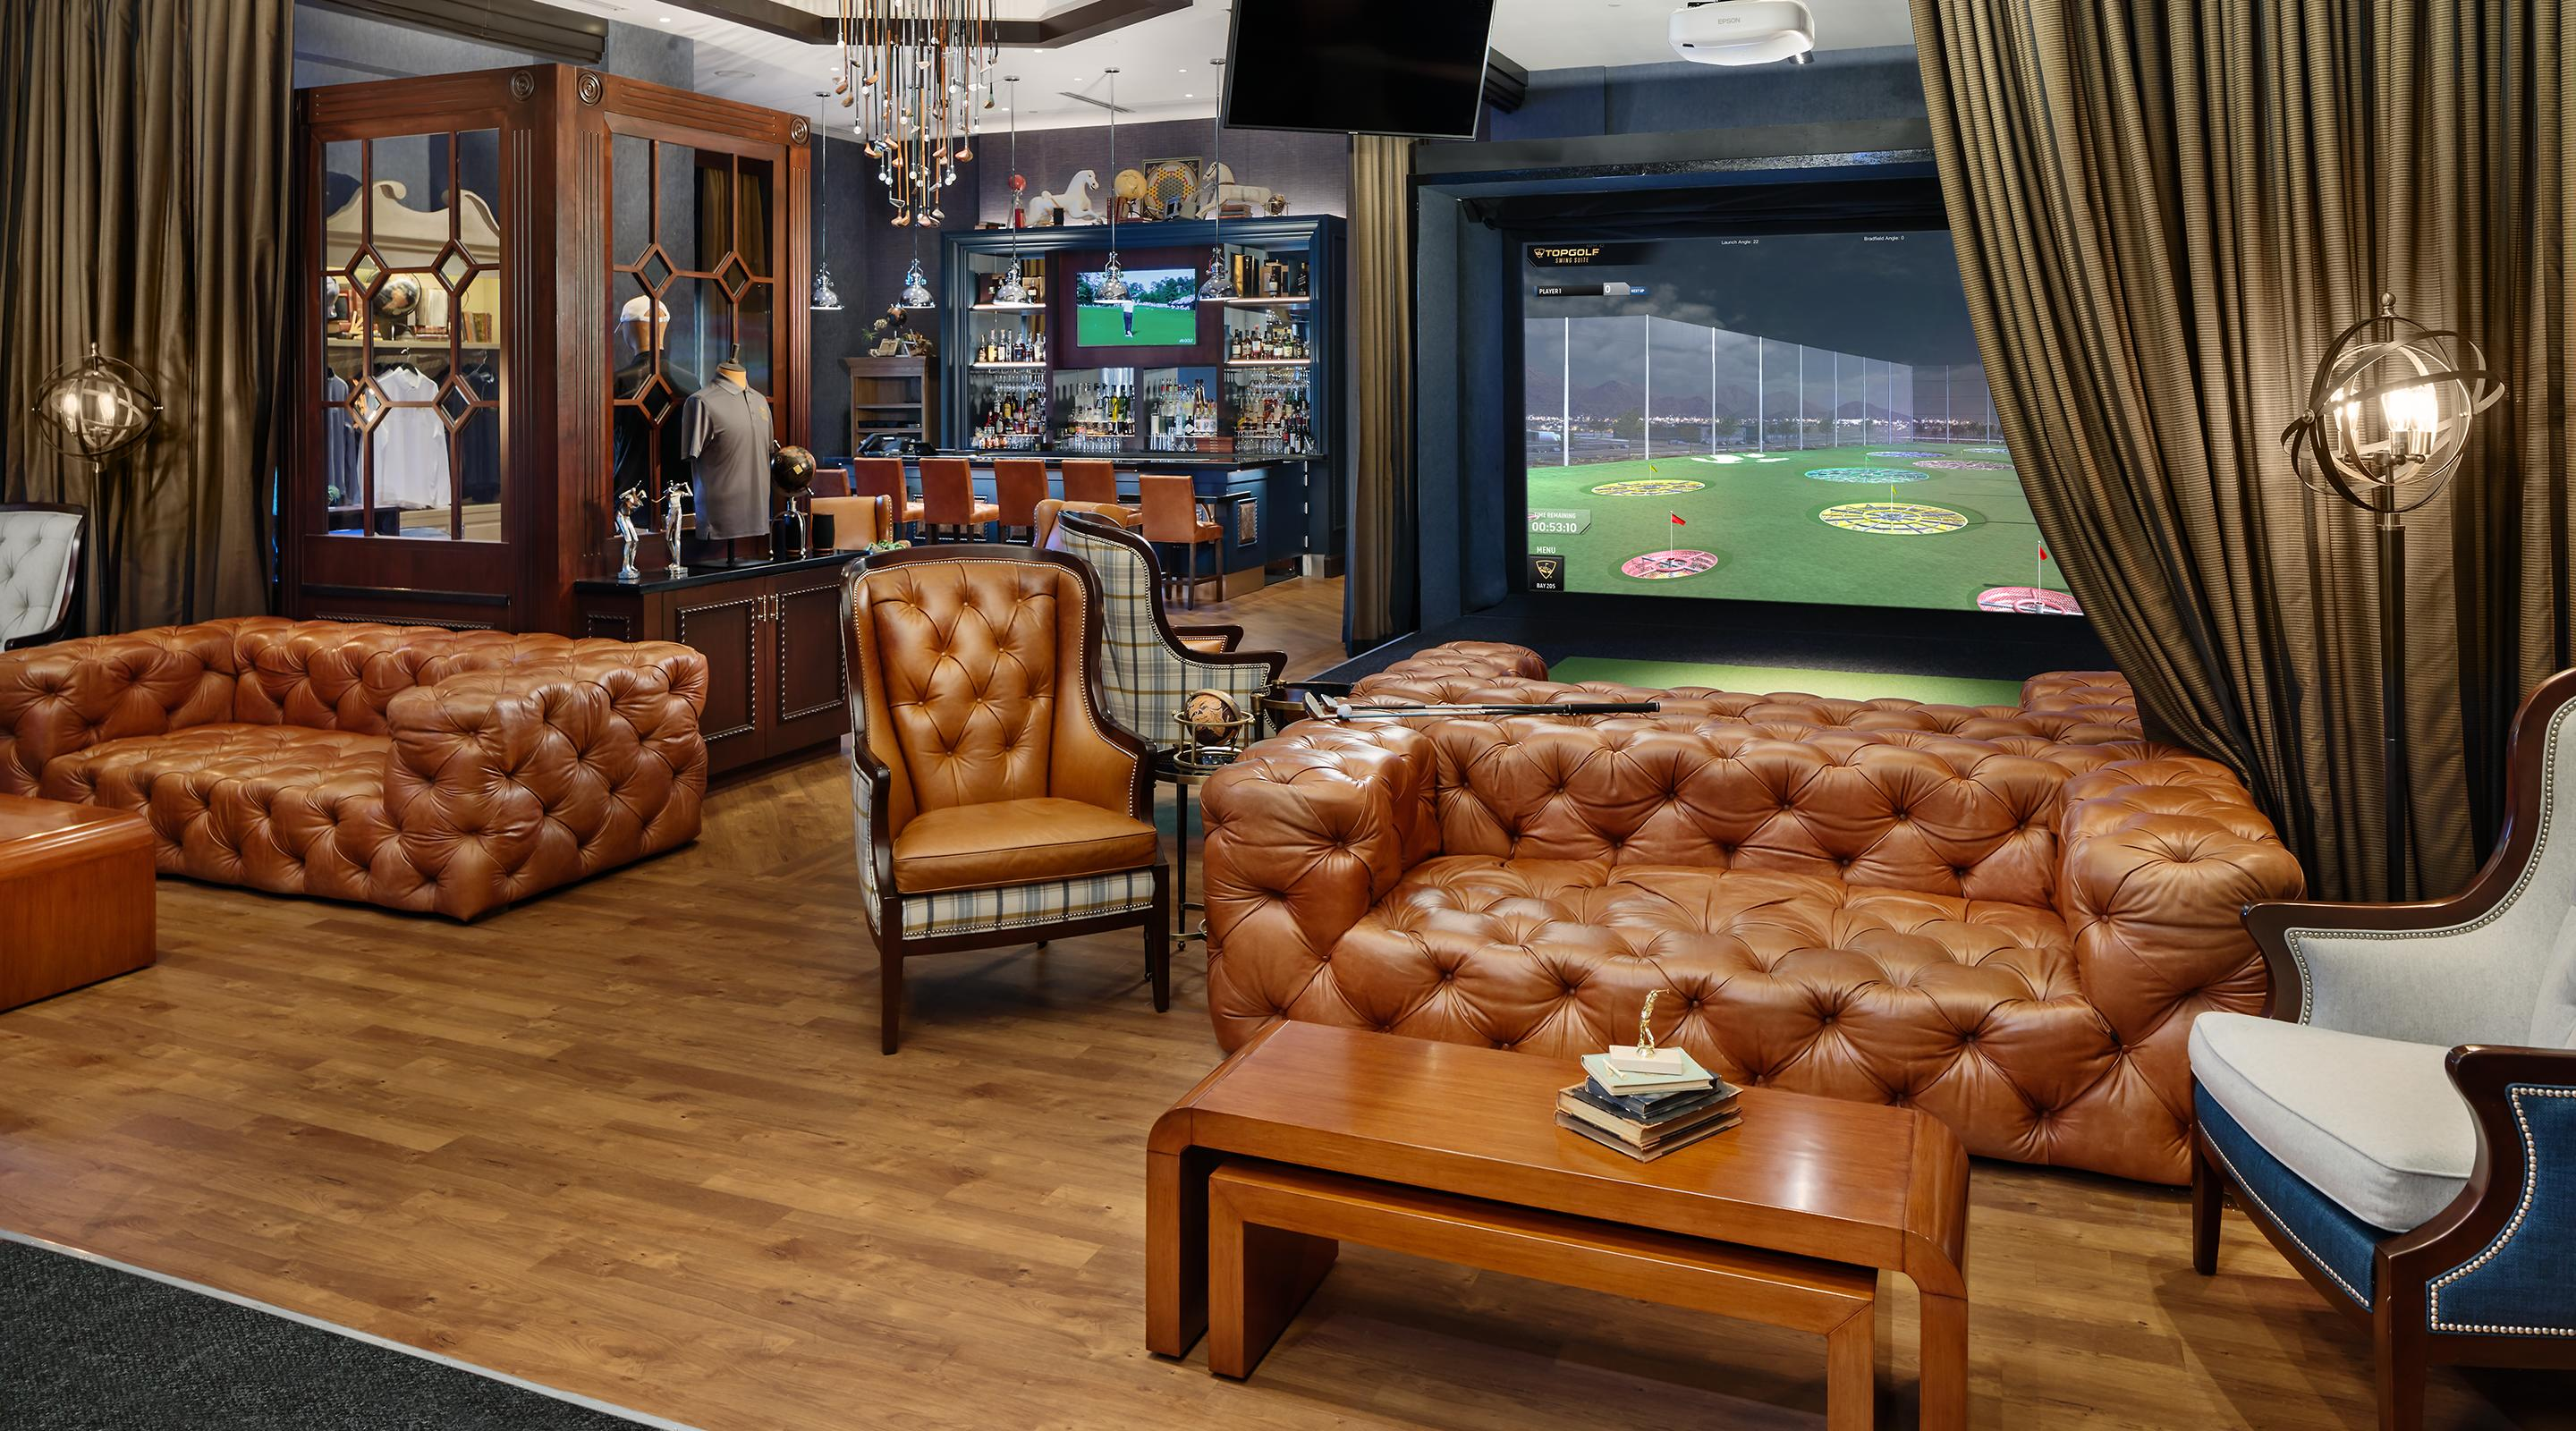 TopGolf Interior Couch.